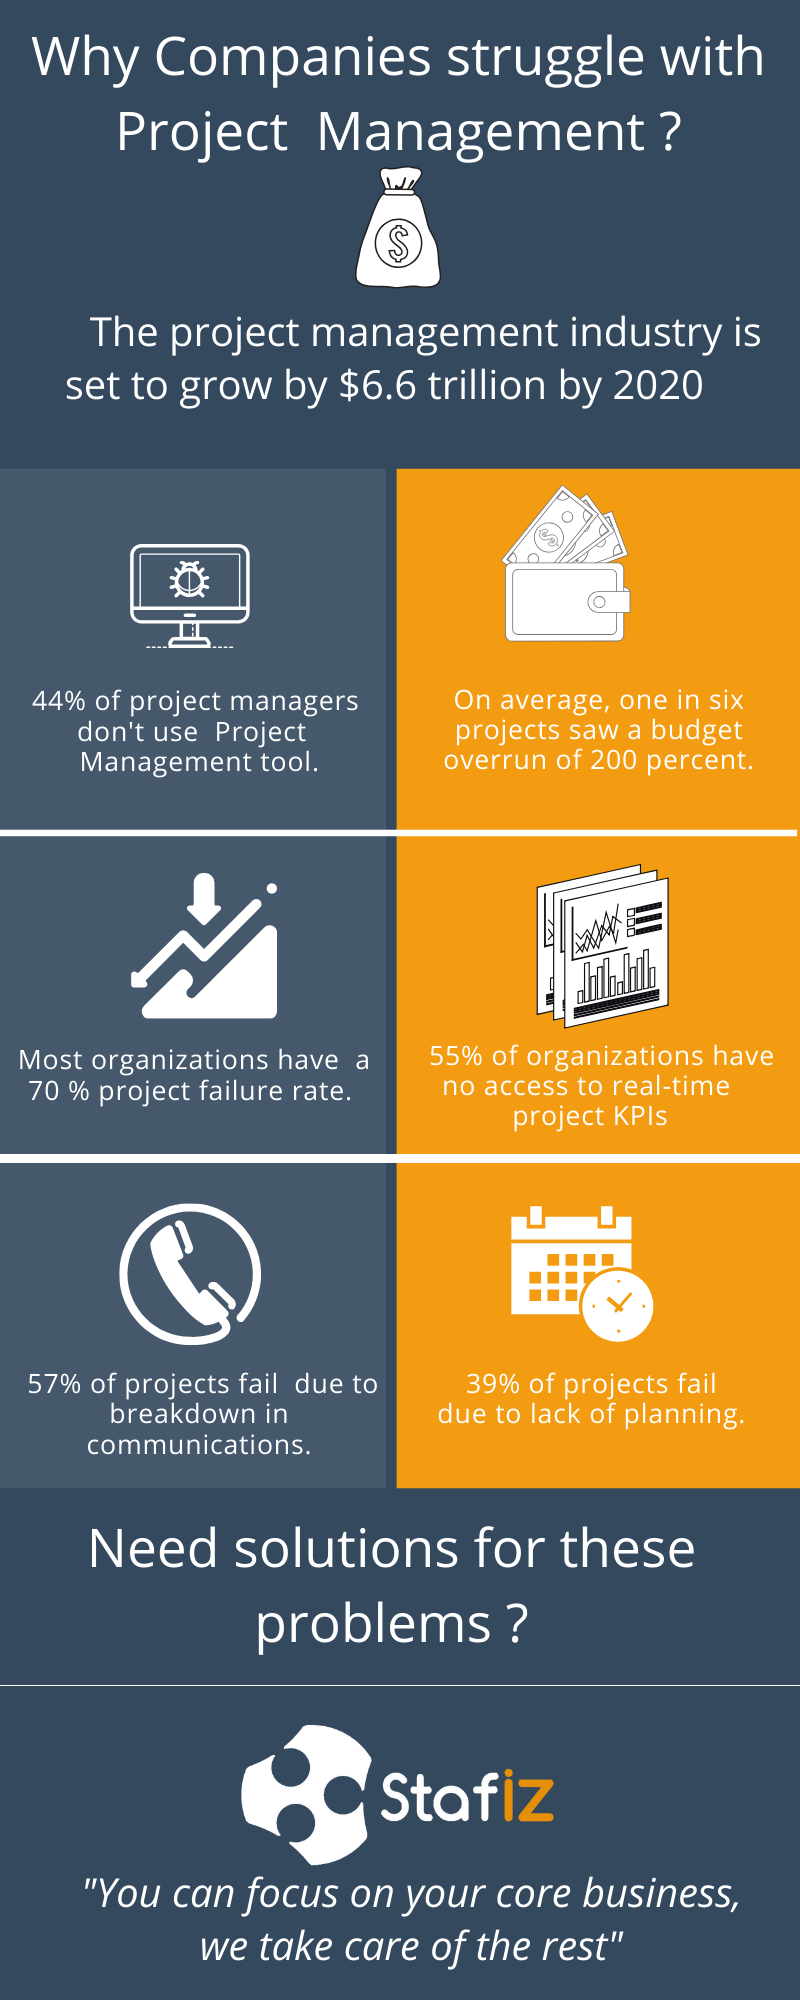 Top 10 reasons for project management failure